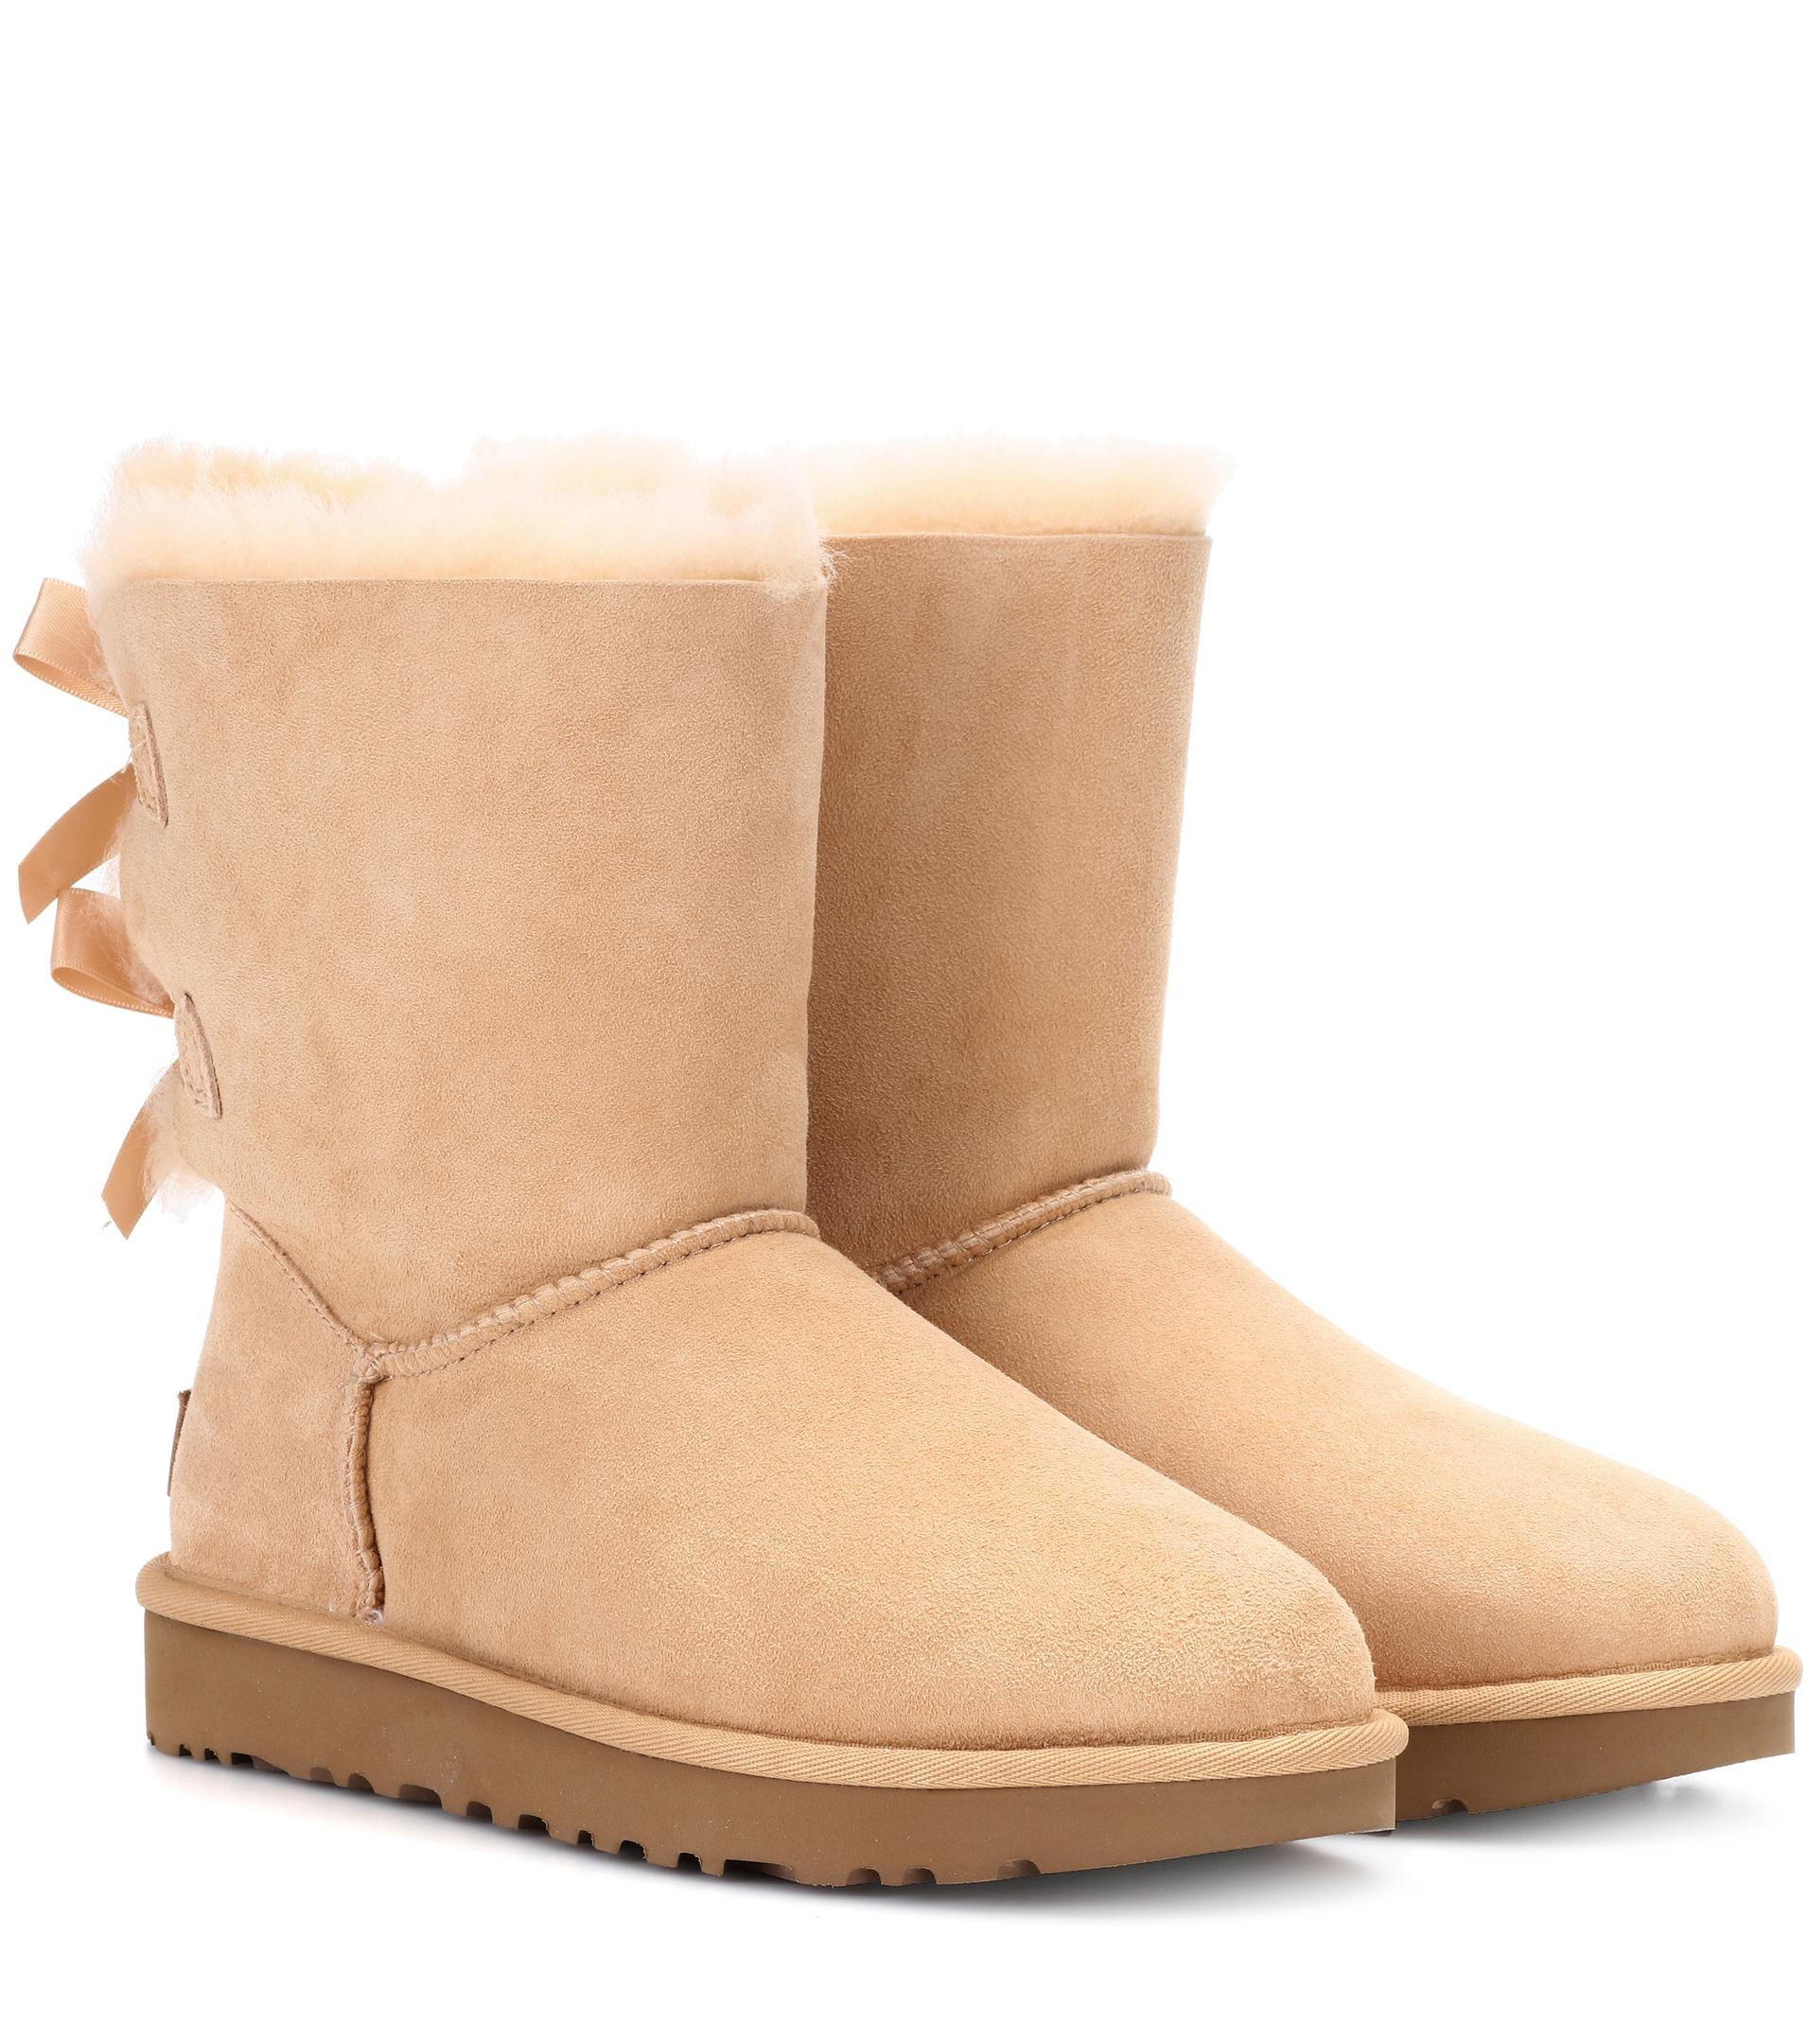 2c672a26038 Ugg Natural Bailey Bow Short Ruffle (amberlight) Women's Pull-on Boots